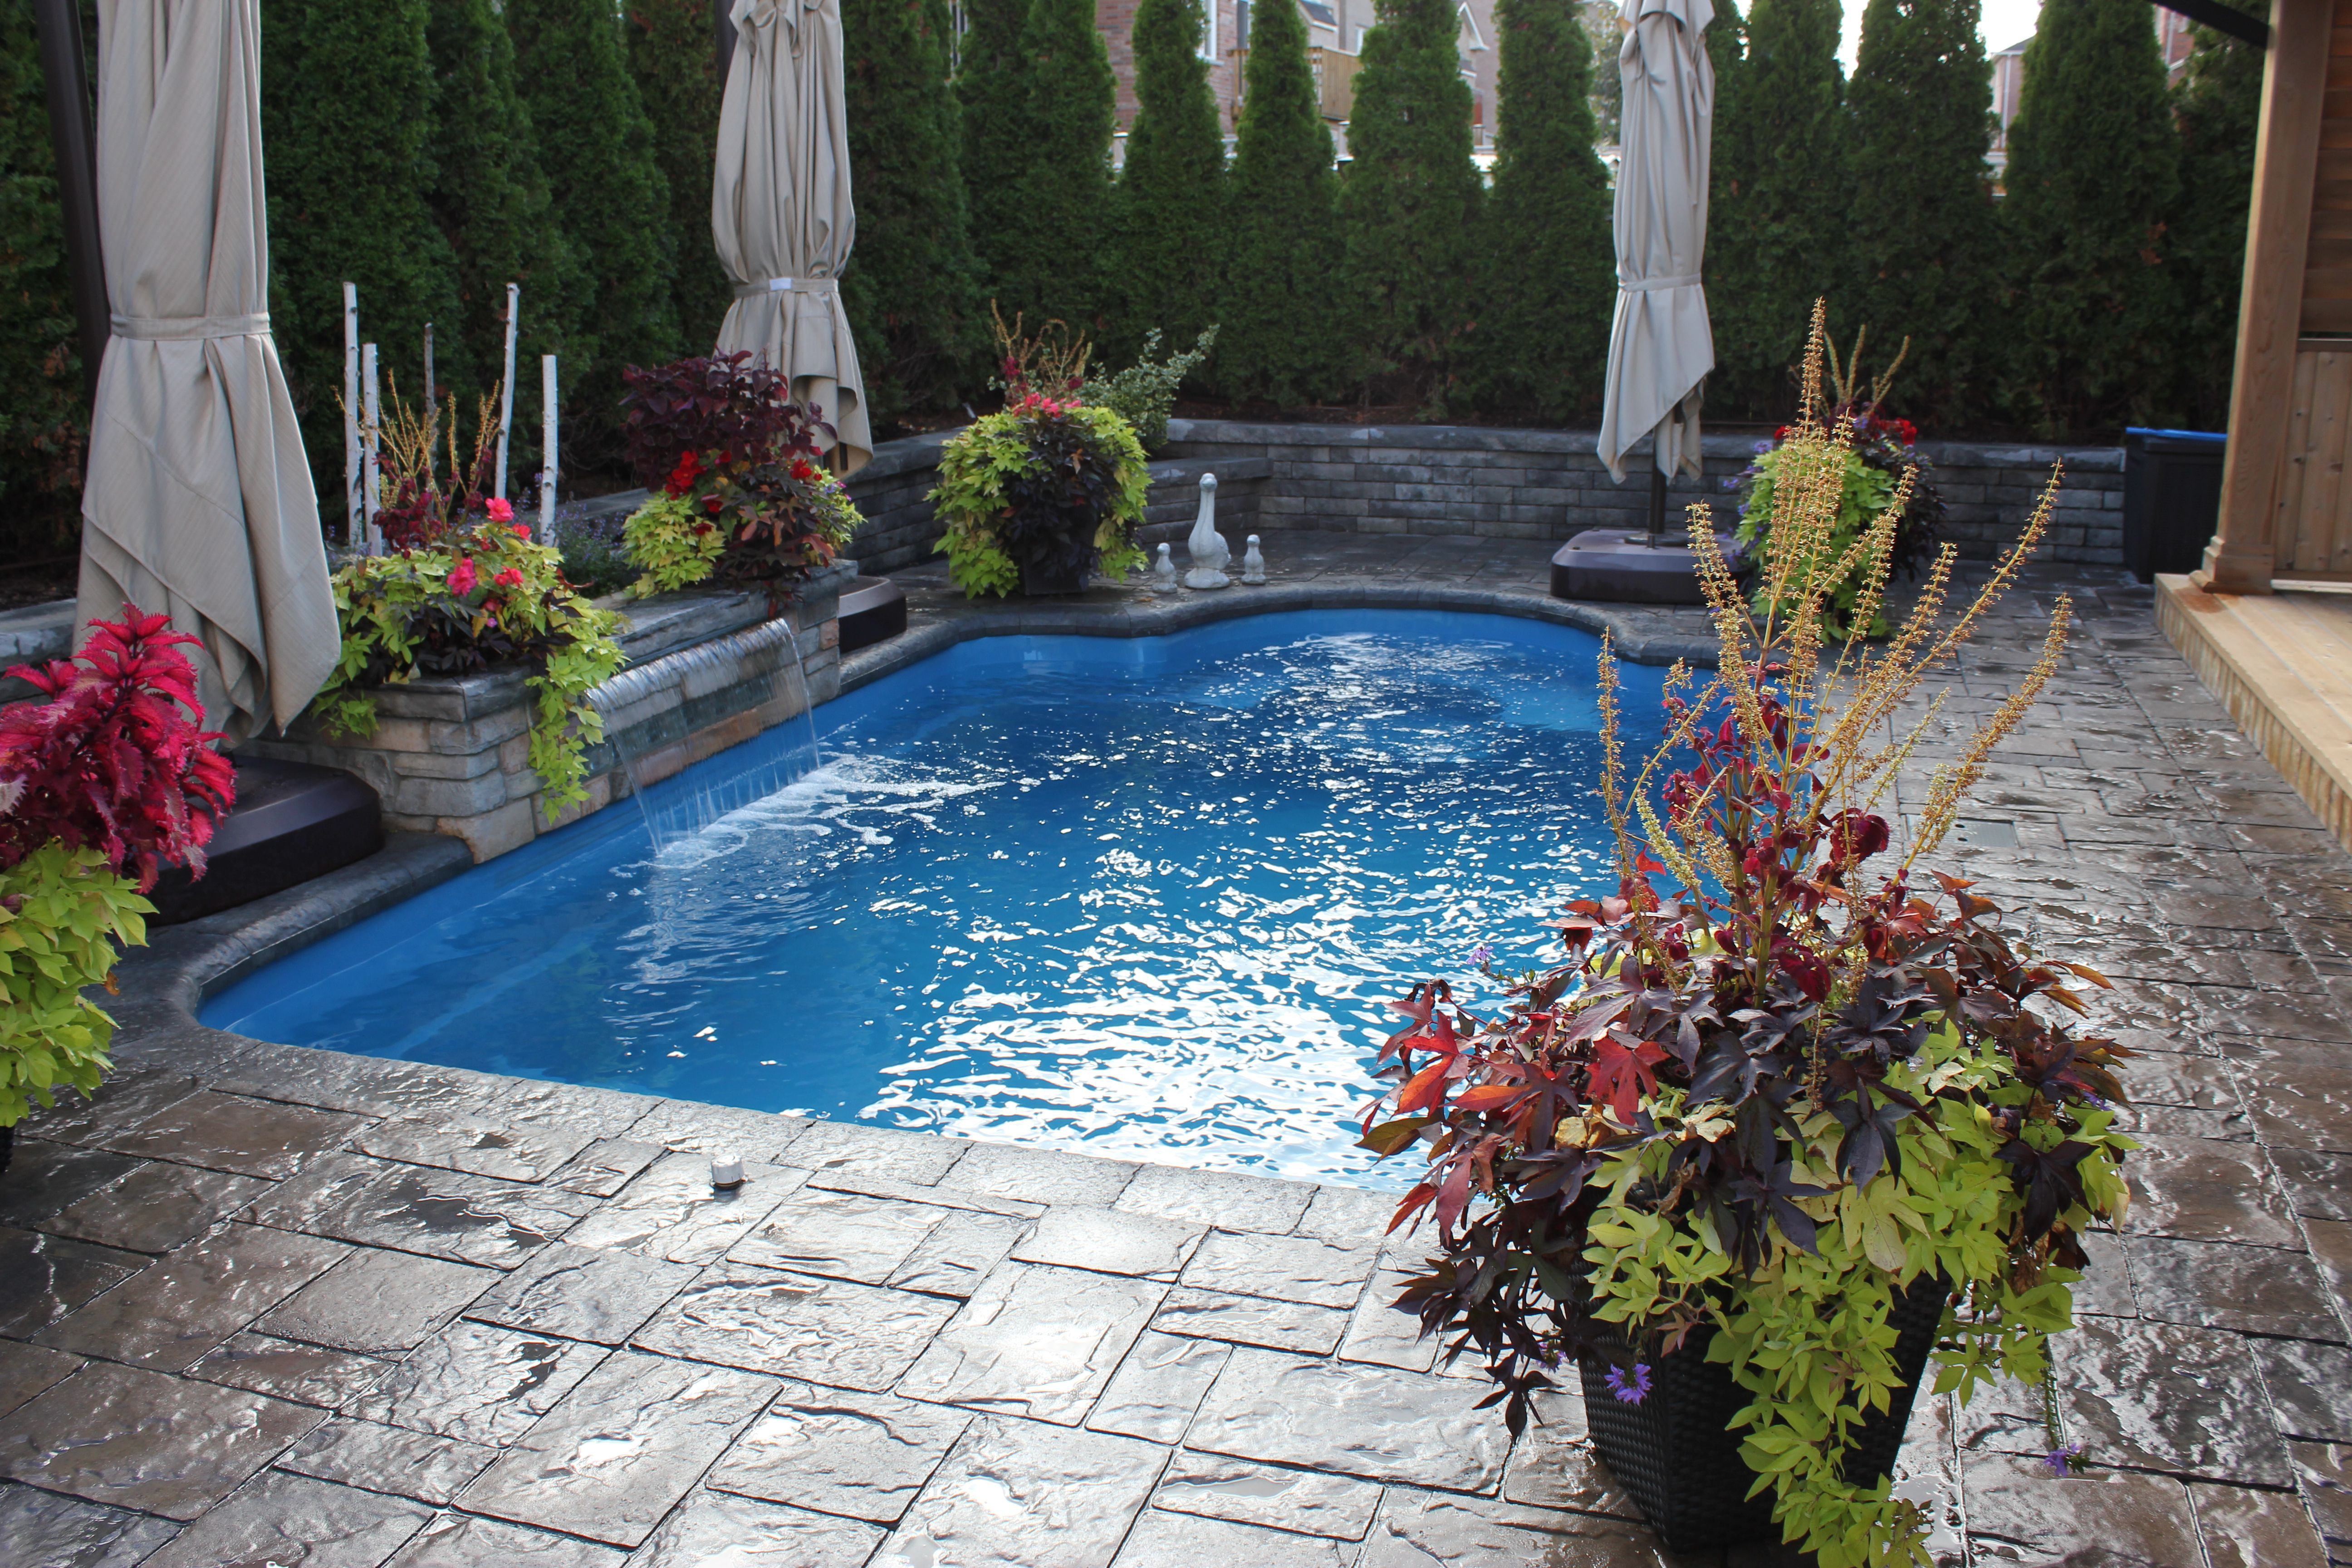 """The Leisure Pools """"Courtyard Roman"""" is 20 feet long and 11 ..."""